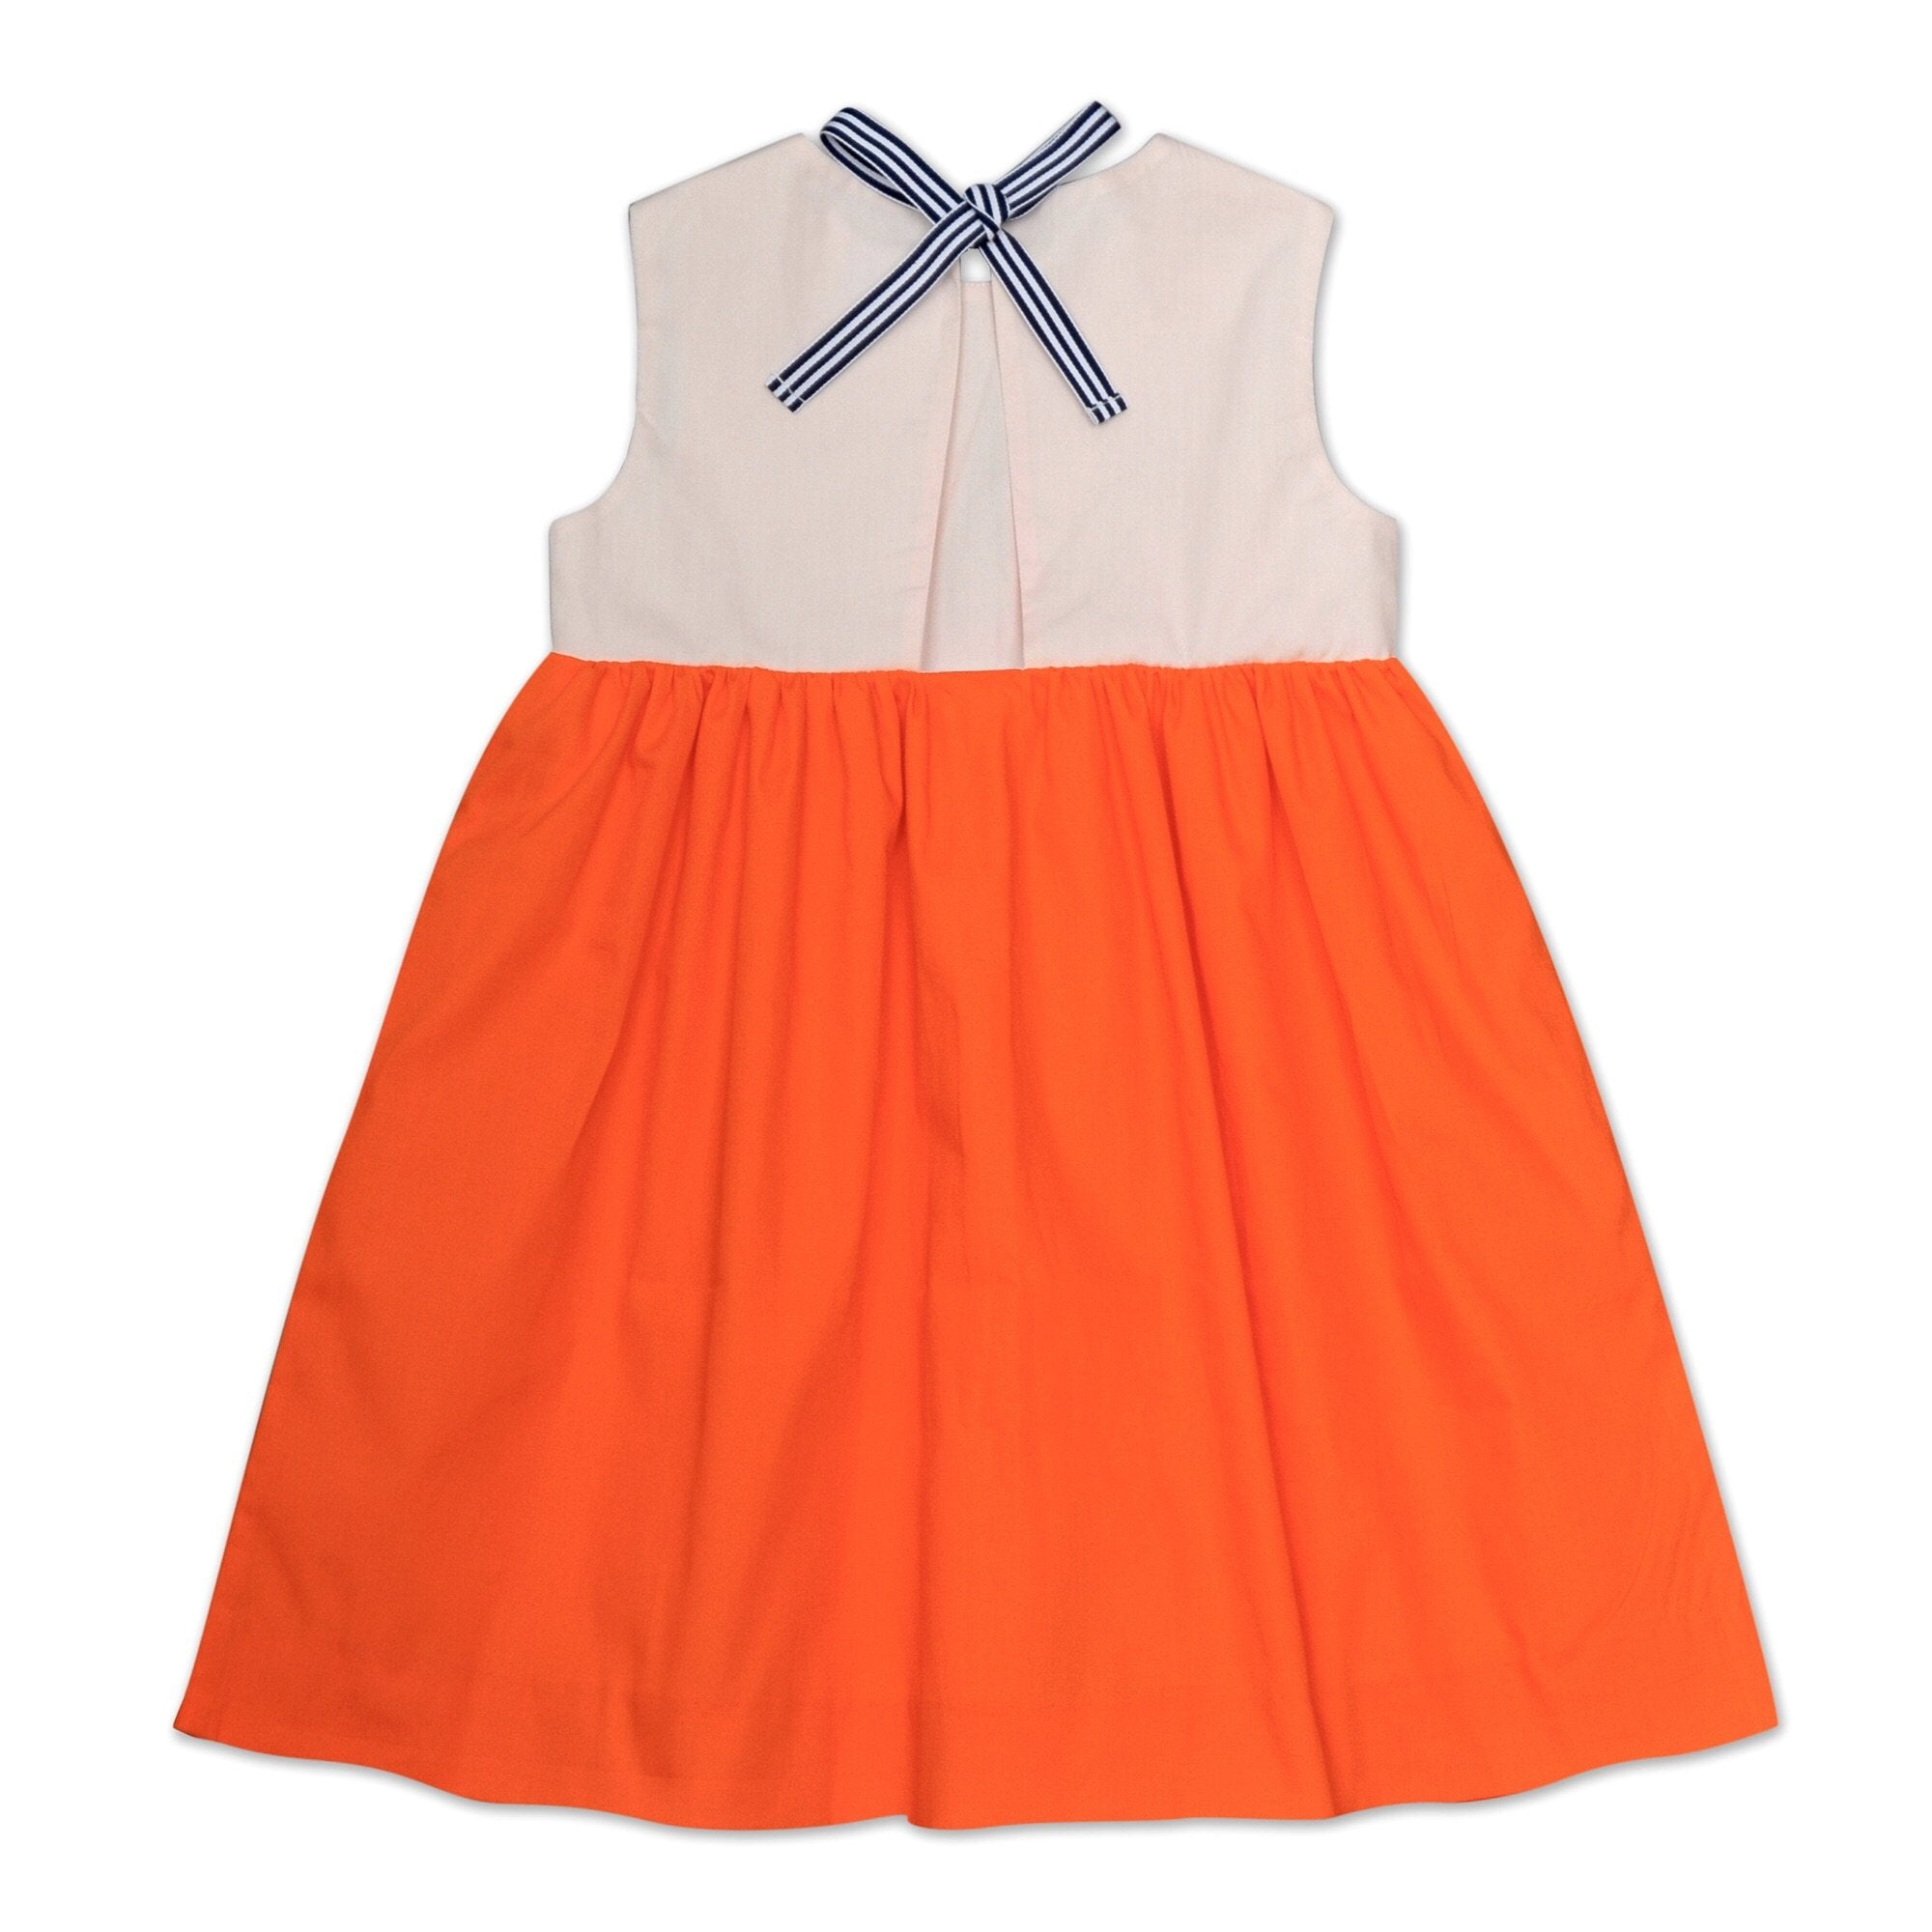 COCO RIBBON DRESS IN PINK AND ORANGE